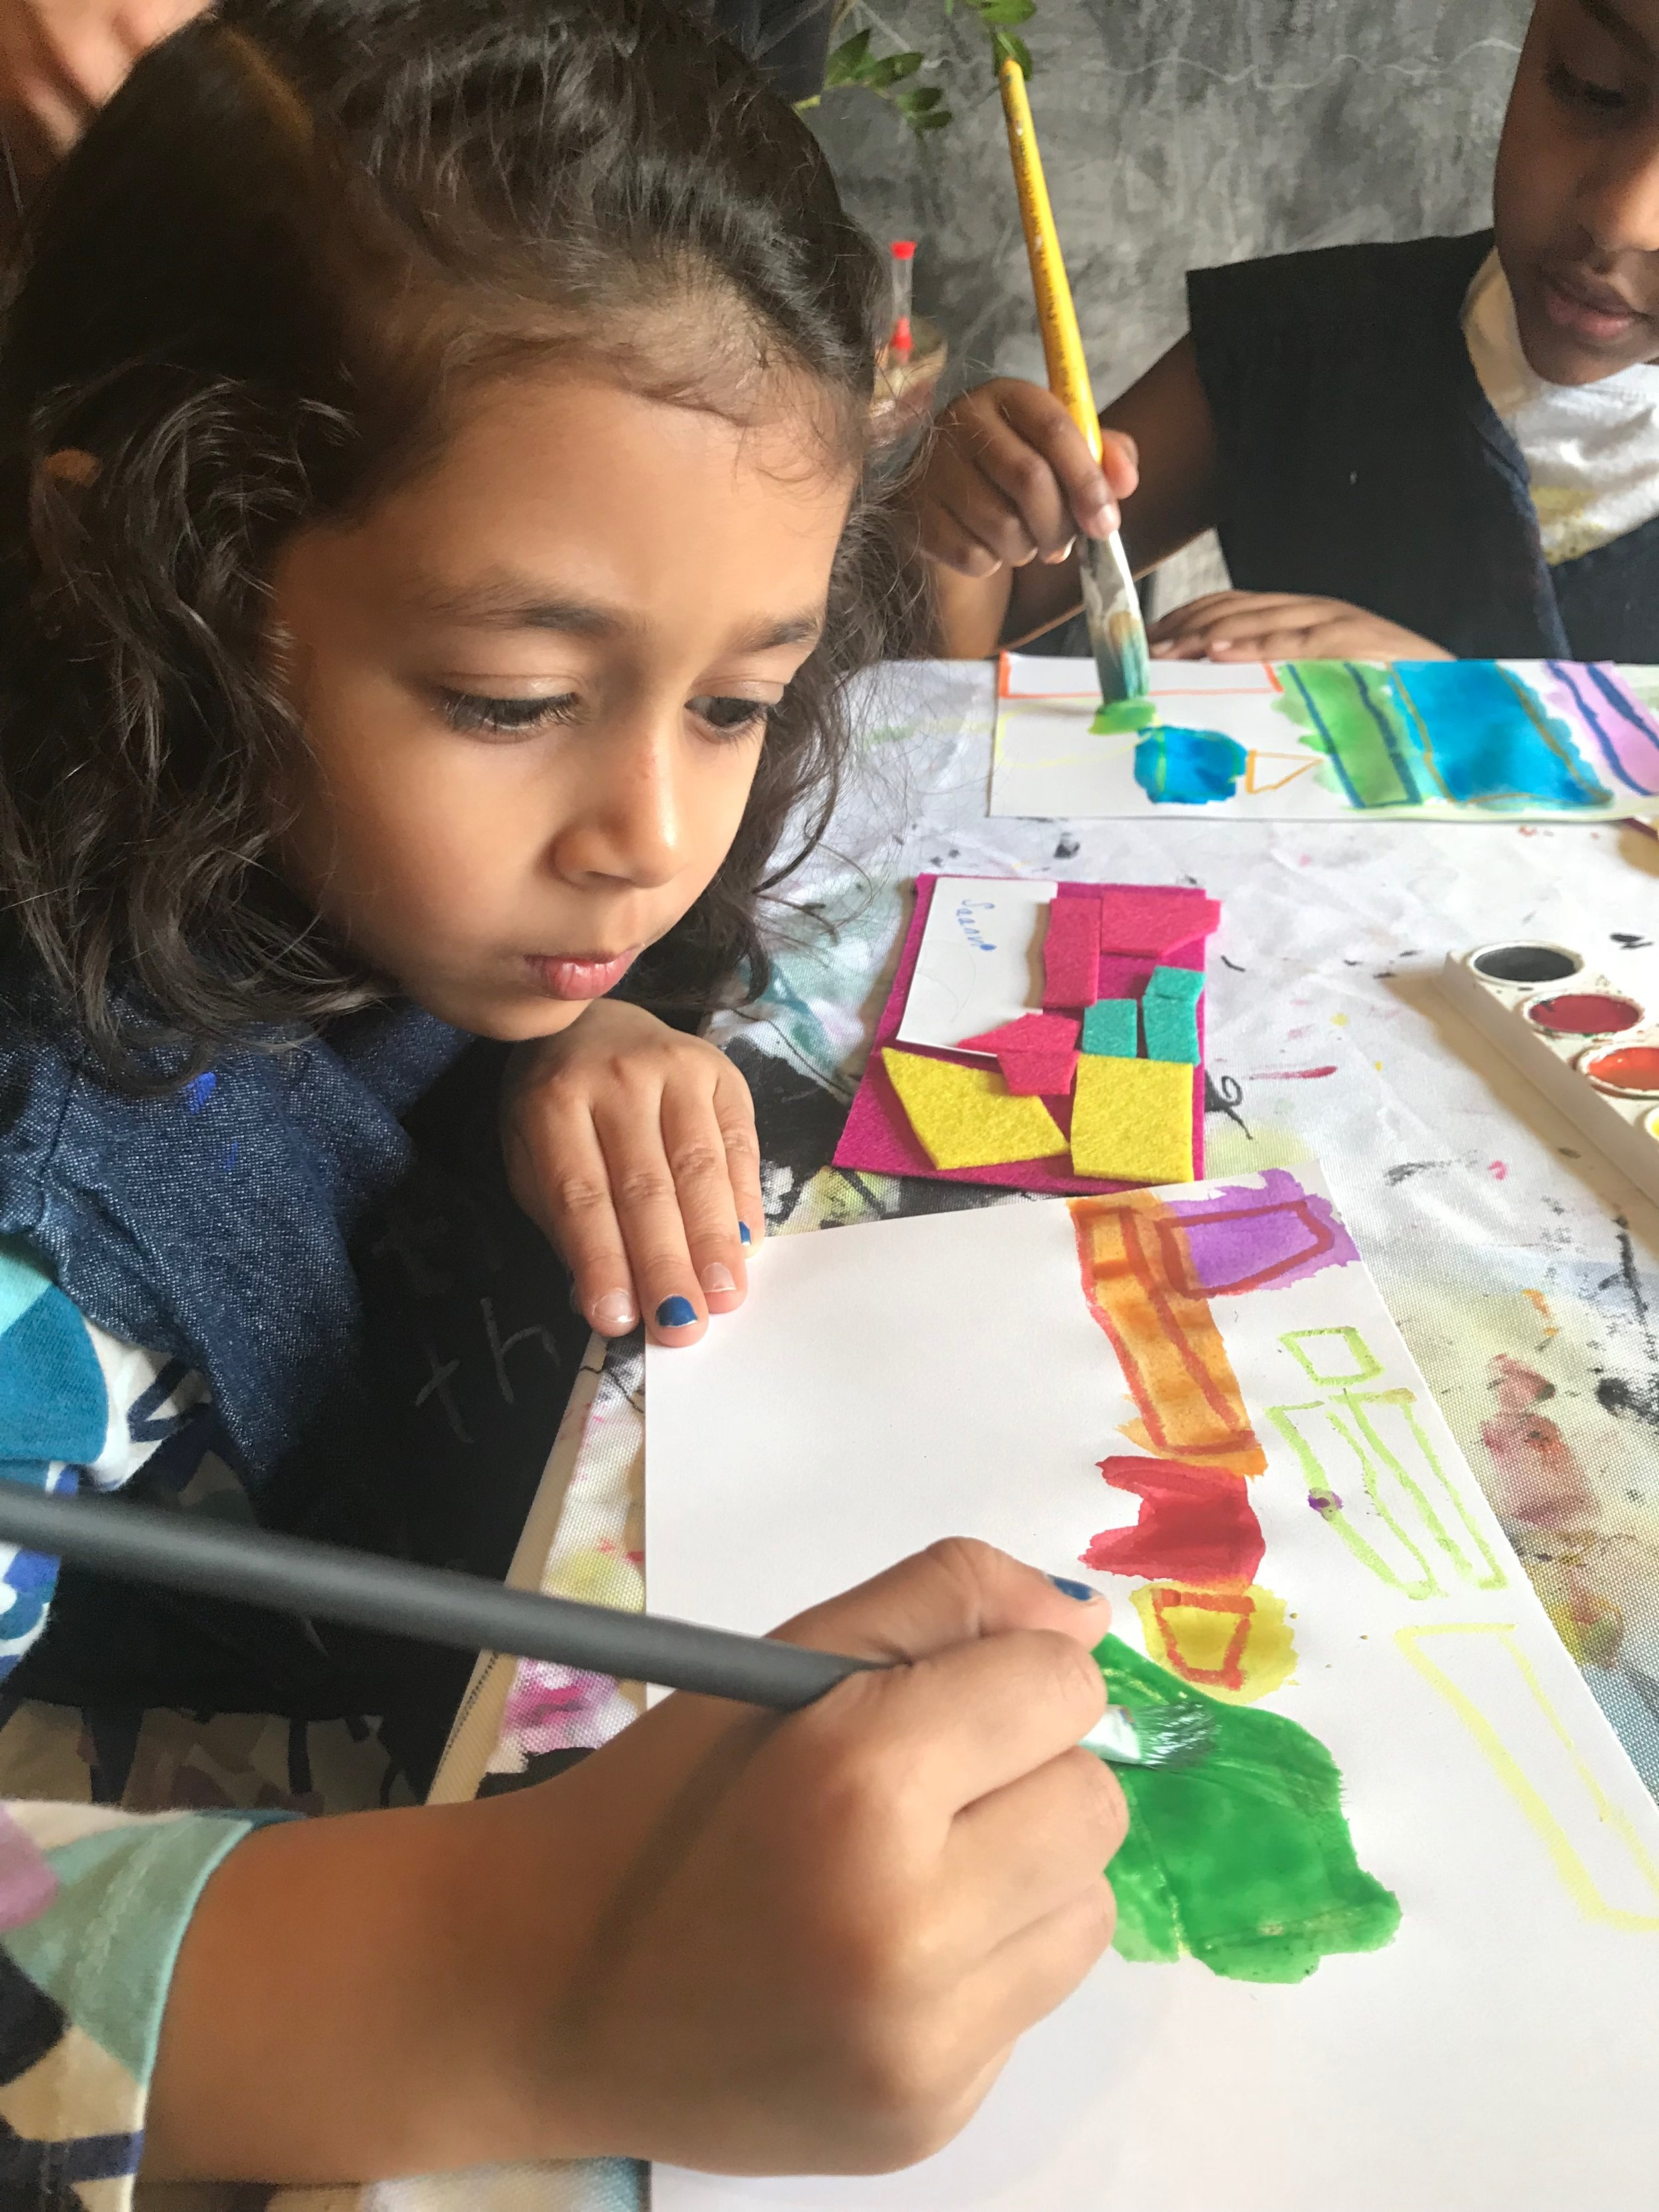 Our Mission - The Art Table Studio is a mobile arts studio for everyone! WE BELIEVE that connection through community ARTs, projects & events build better neighborhoods and happy people everywhere!Learn More